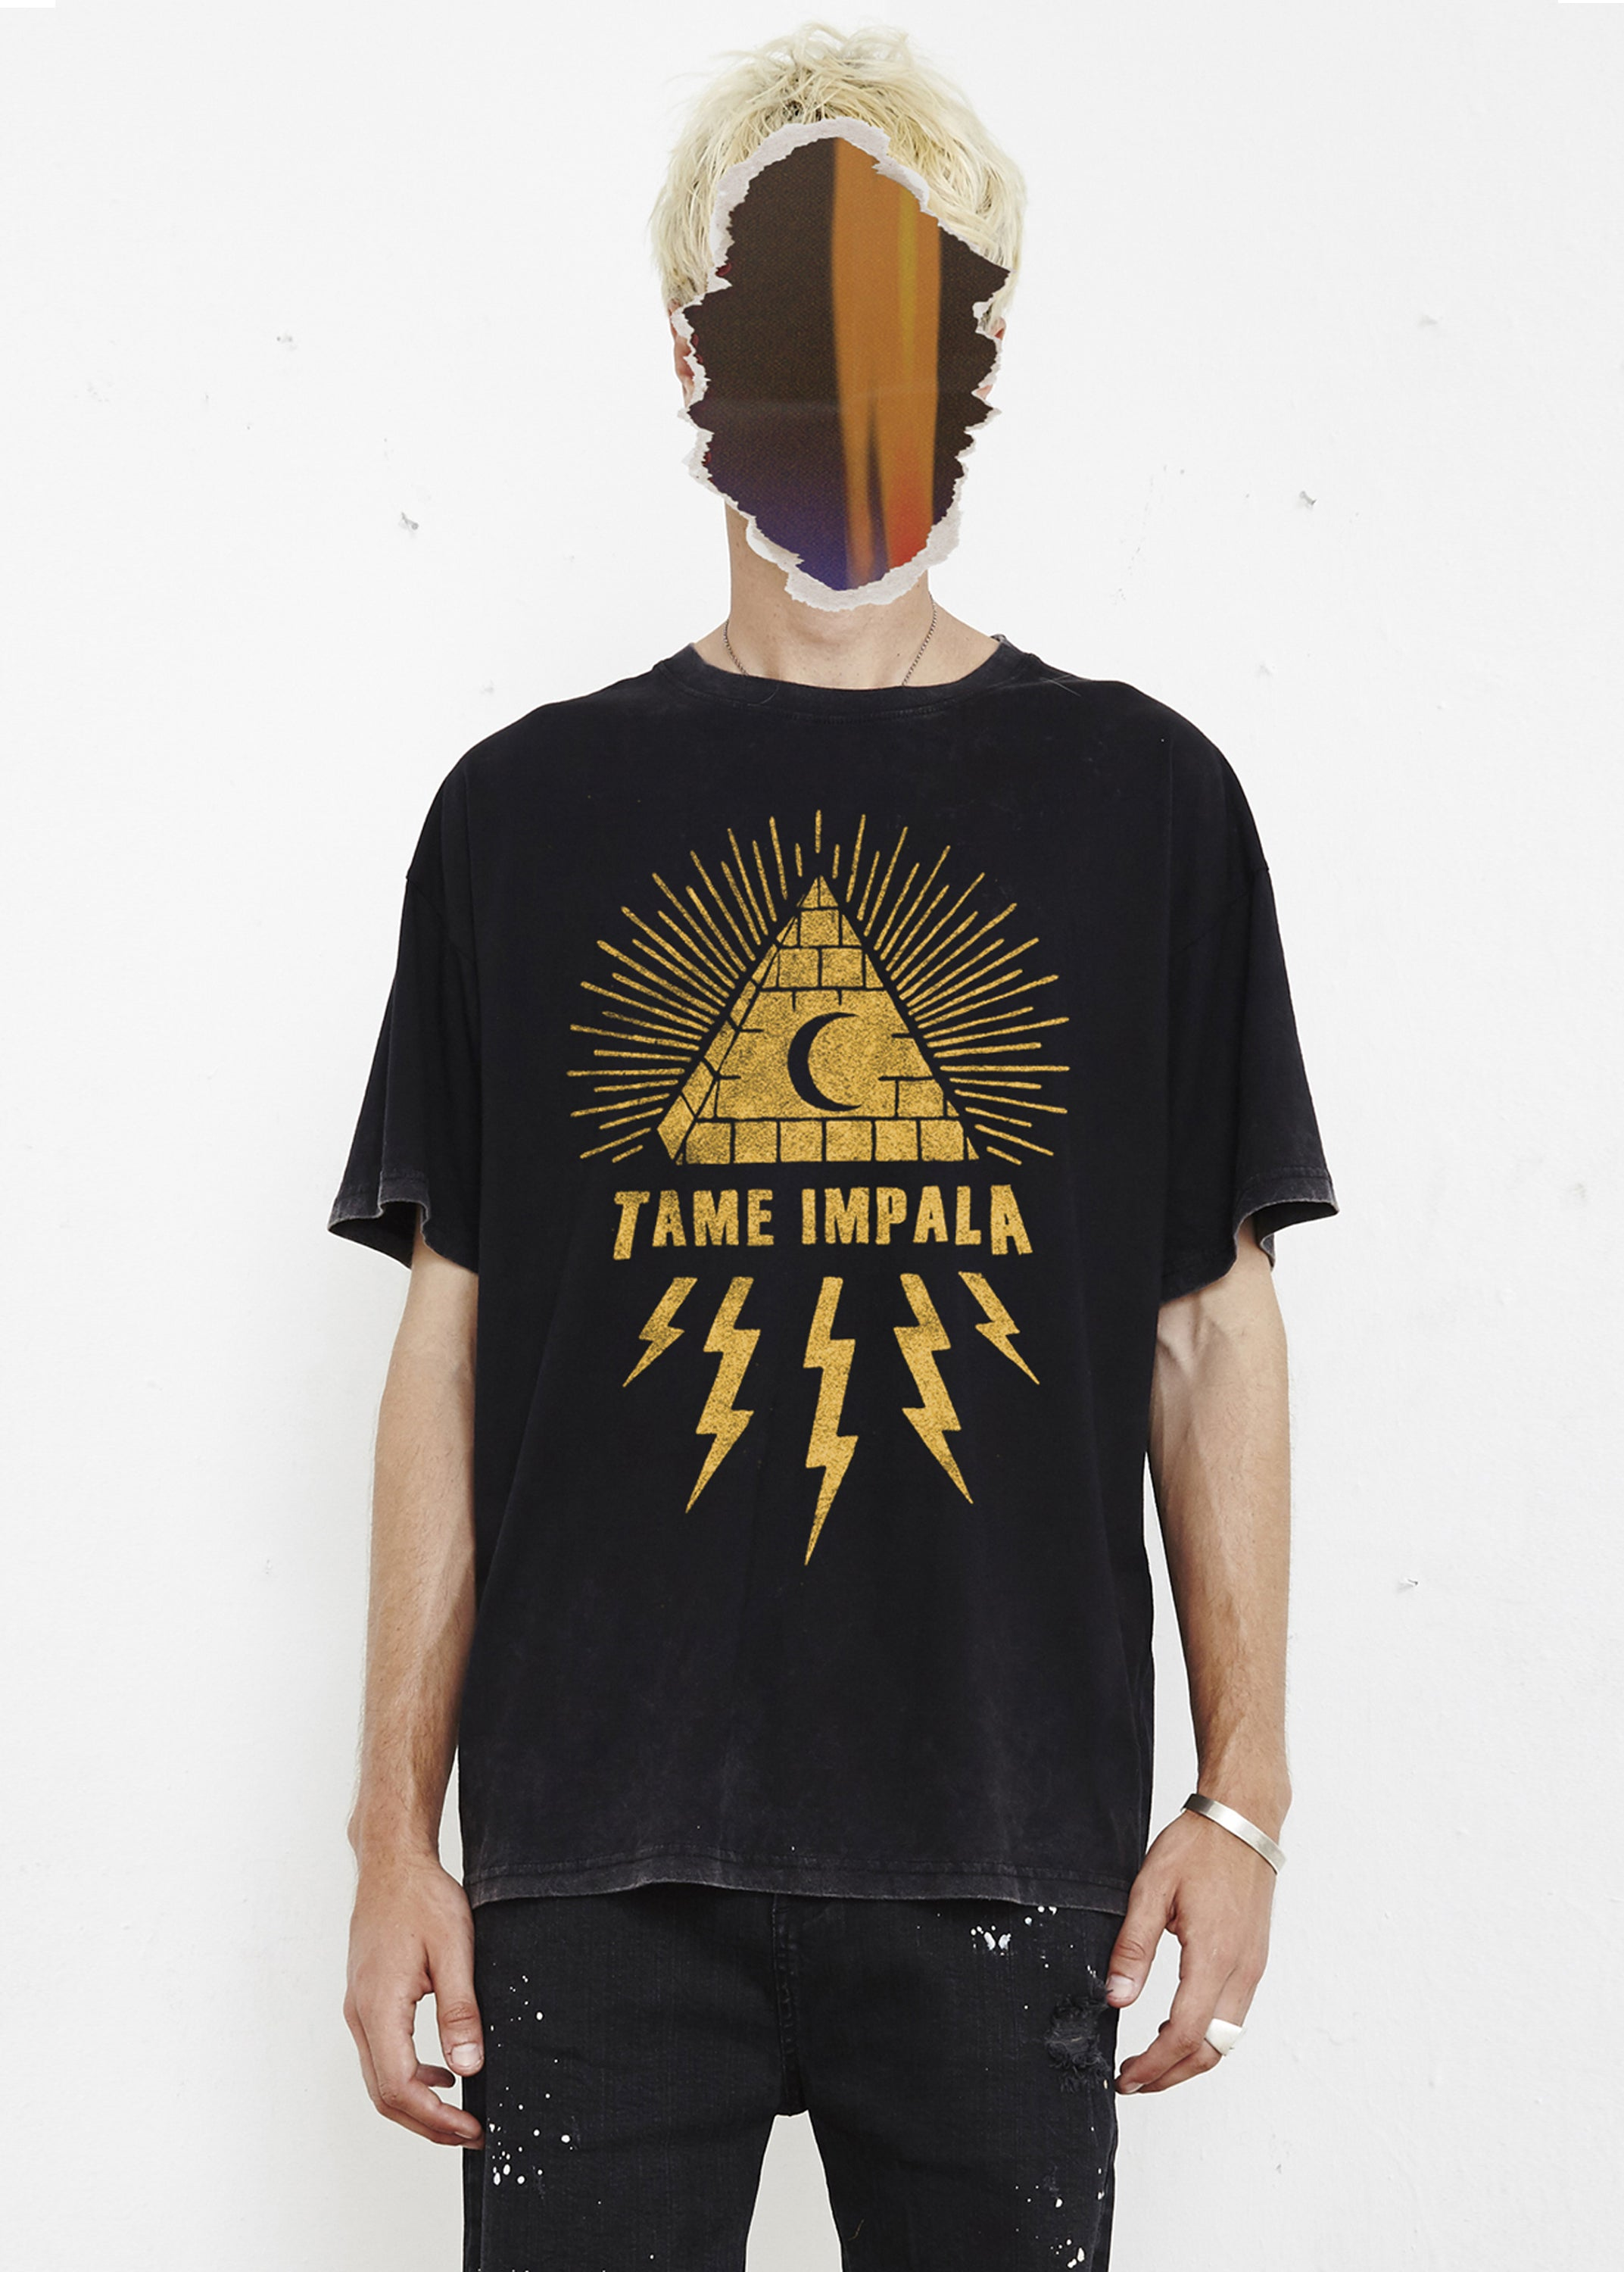 THE PEOPLE VS X TAME IMPALA TEE - YELLOW GRAPHIC